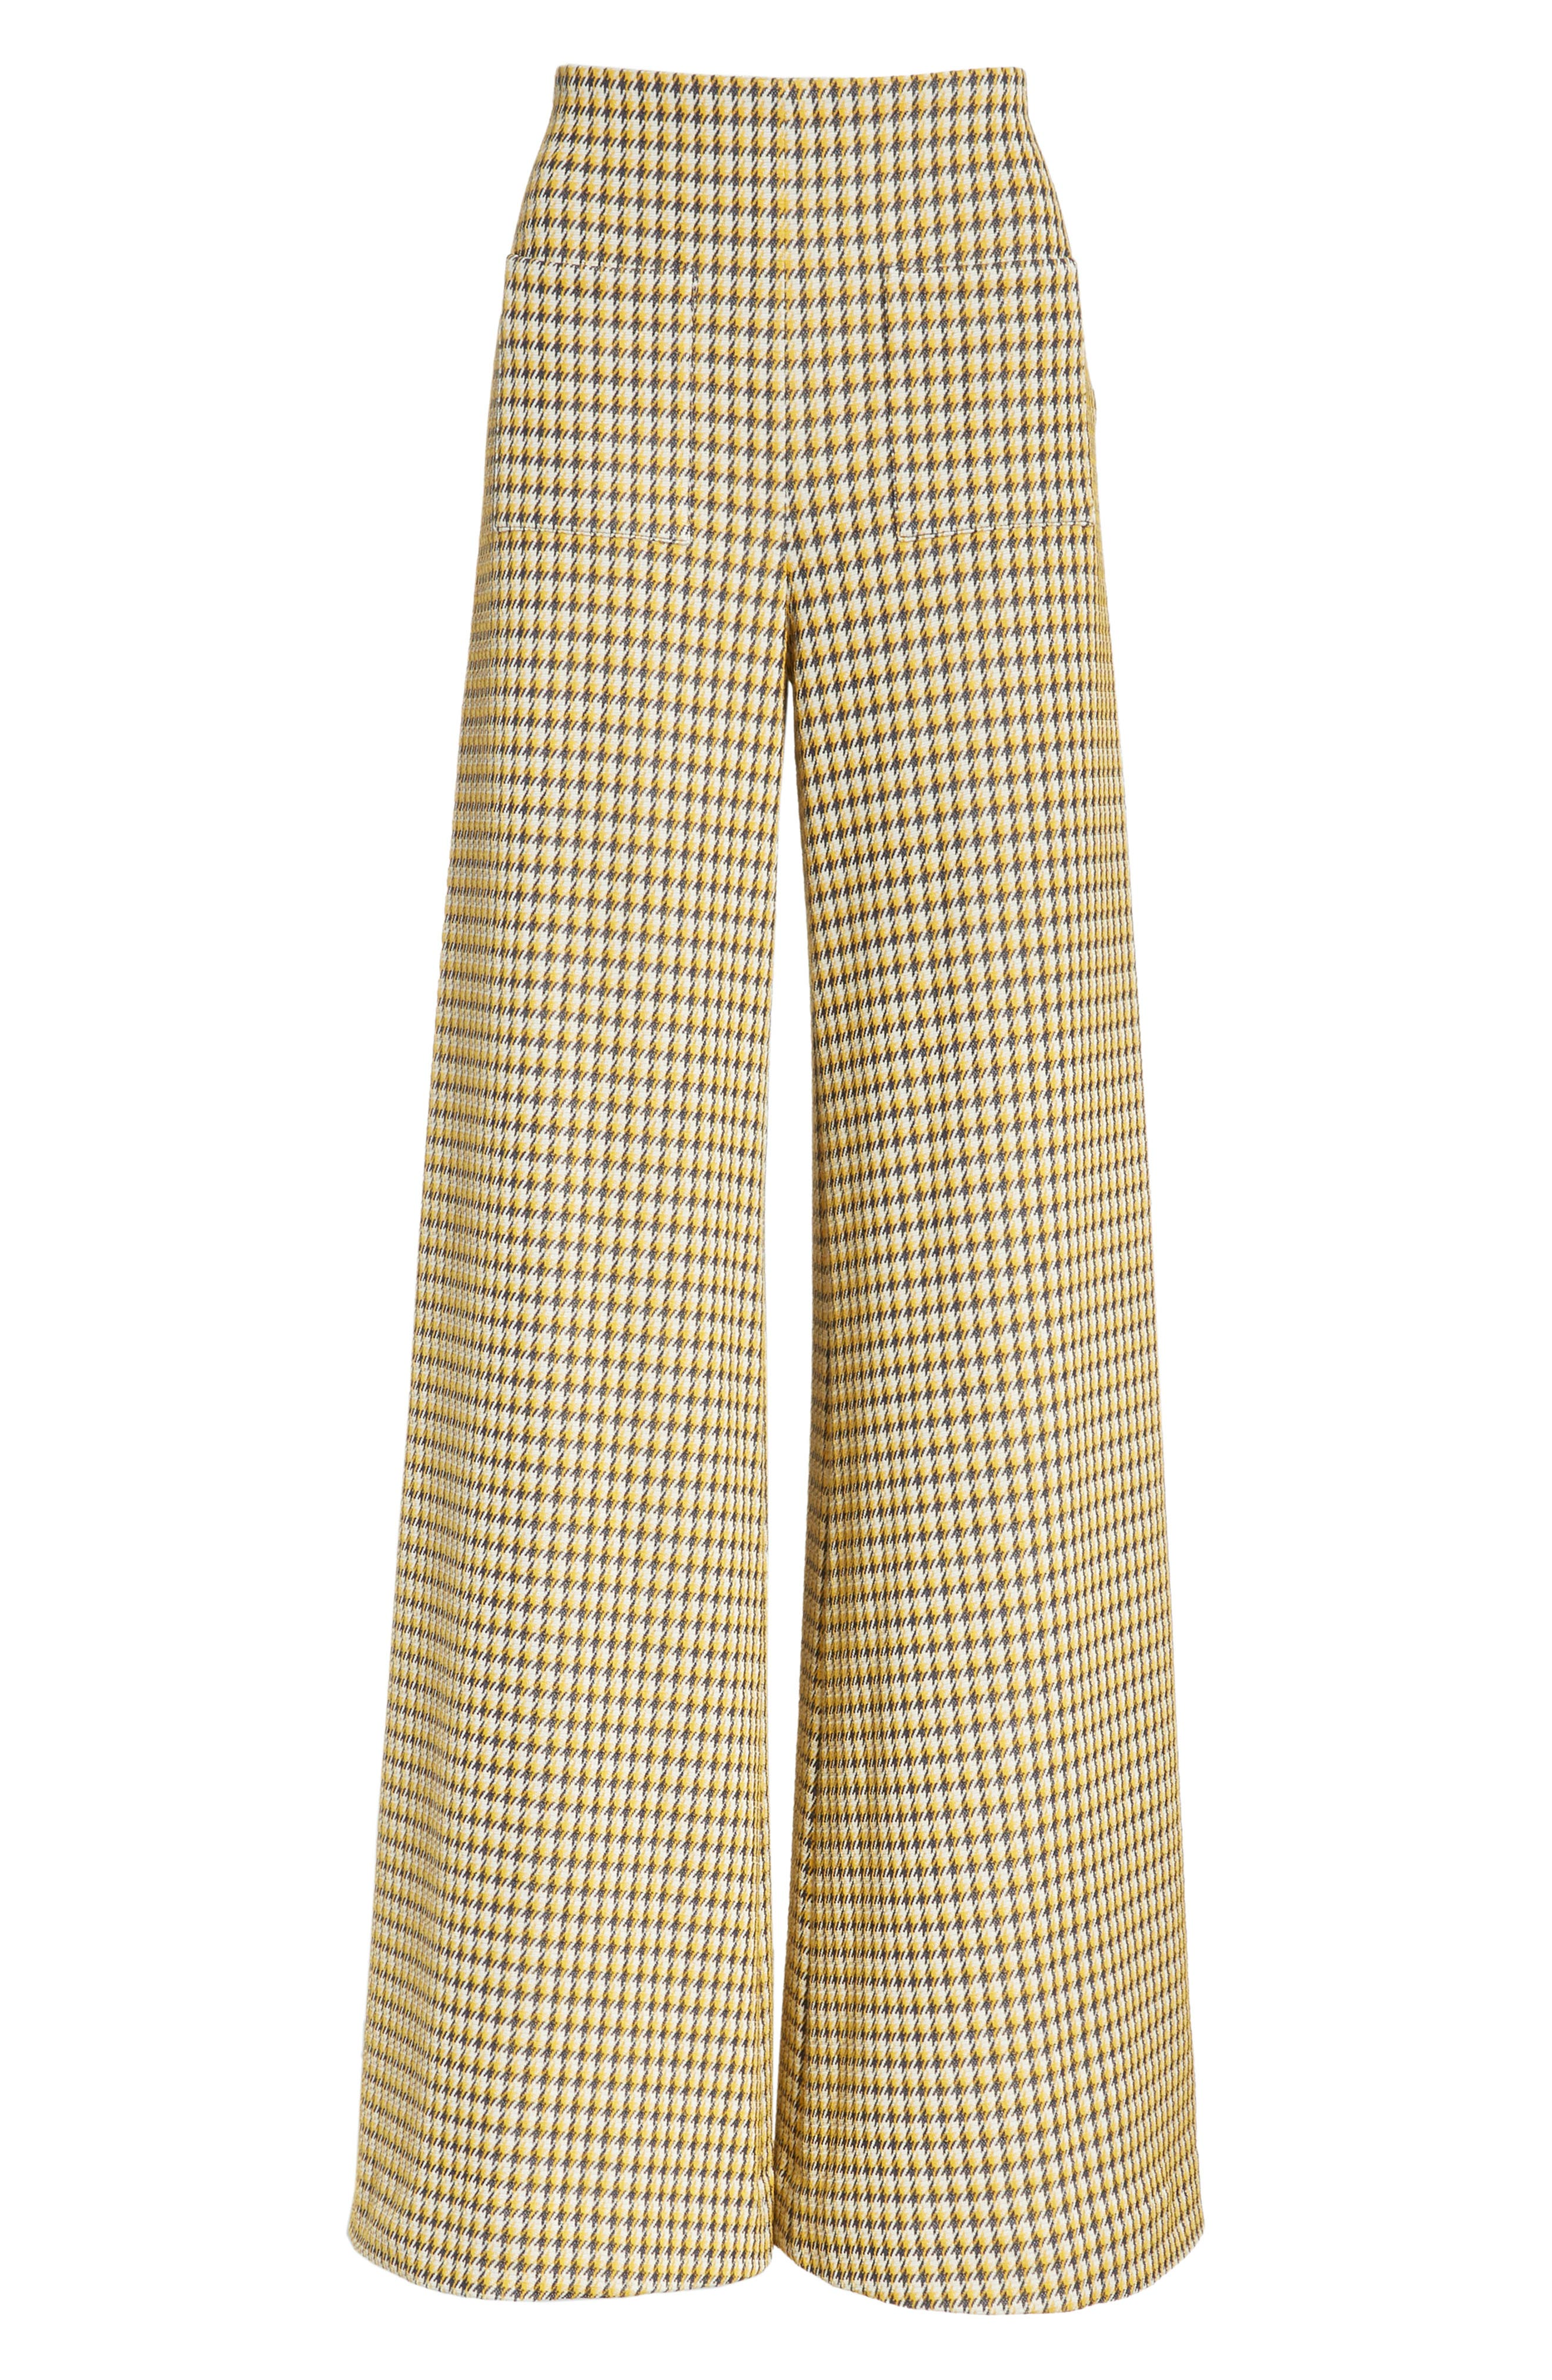 Luc Houndstooth Wide Leg Pants,                             Alternate thumbnail 6, color,                             YELLOW/ MIDNIGHT